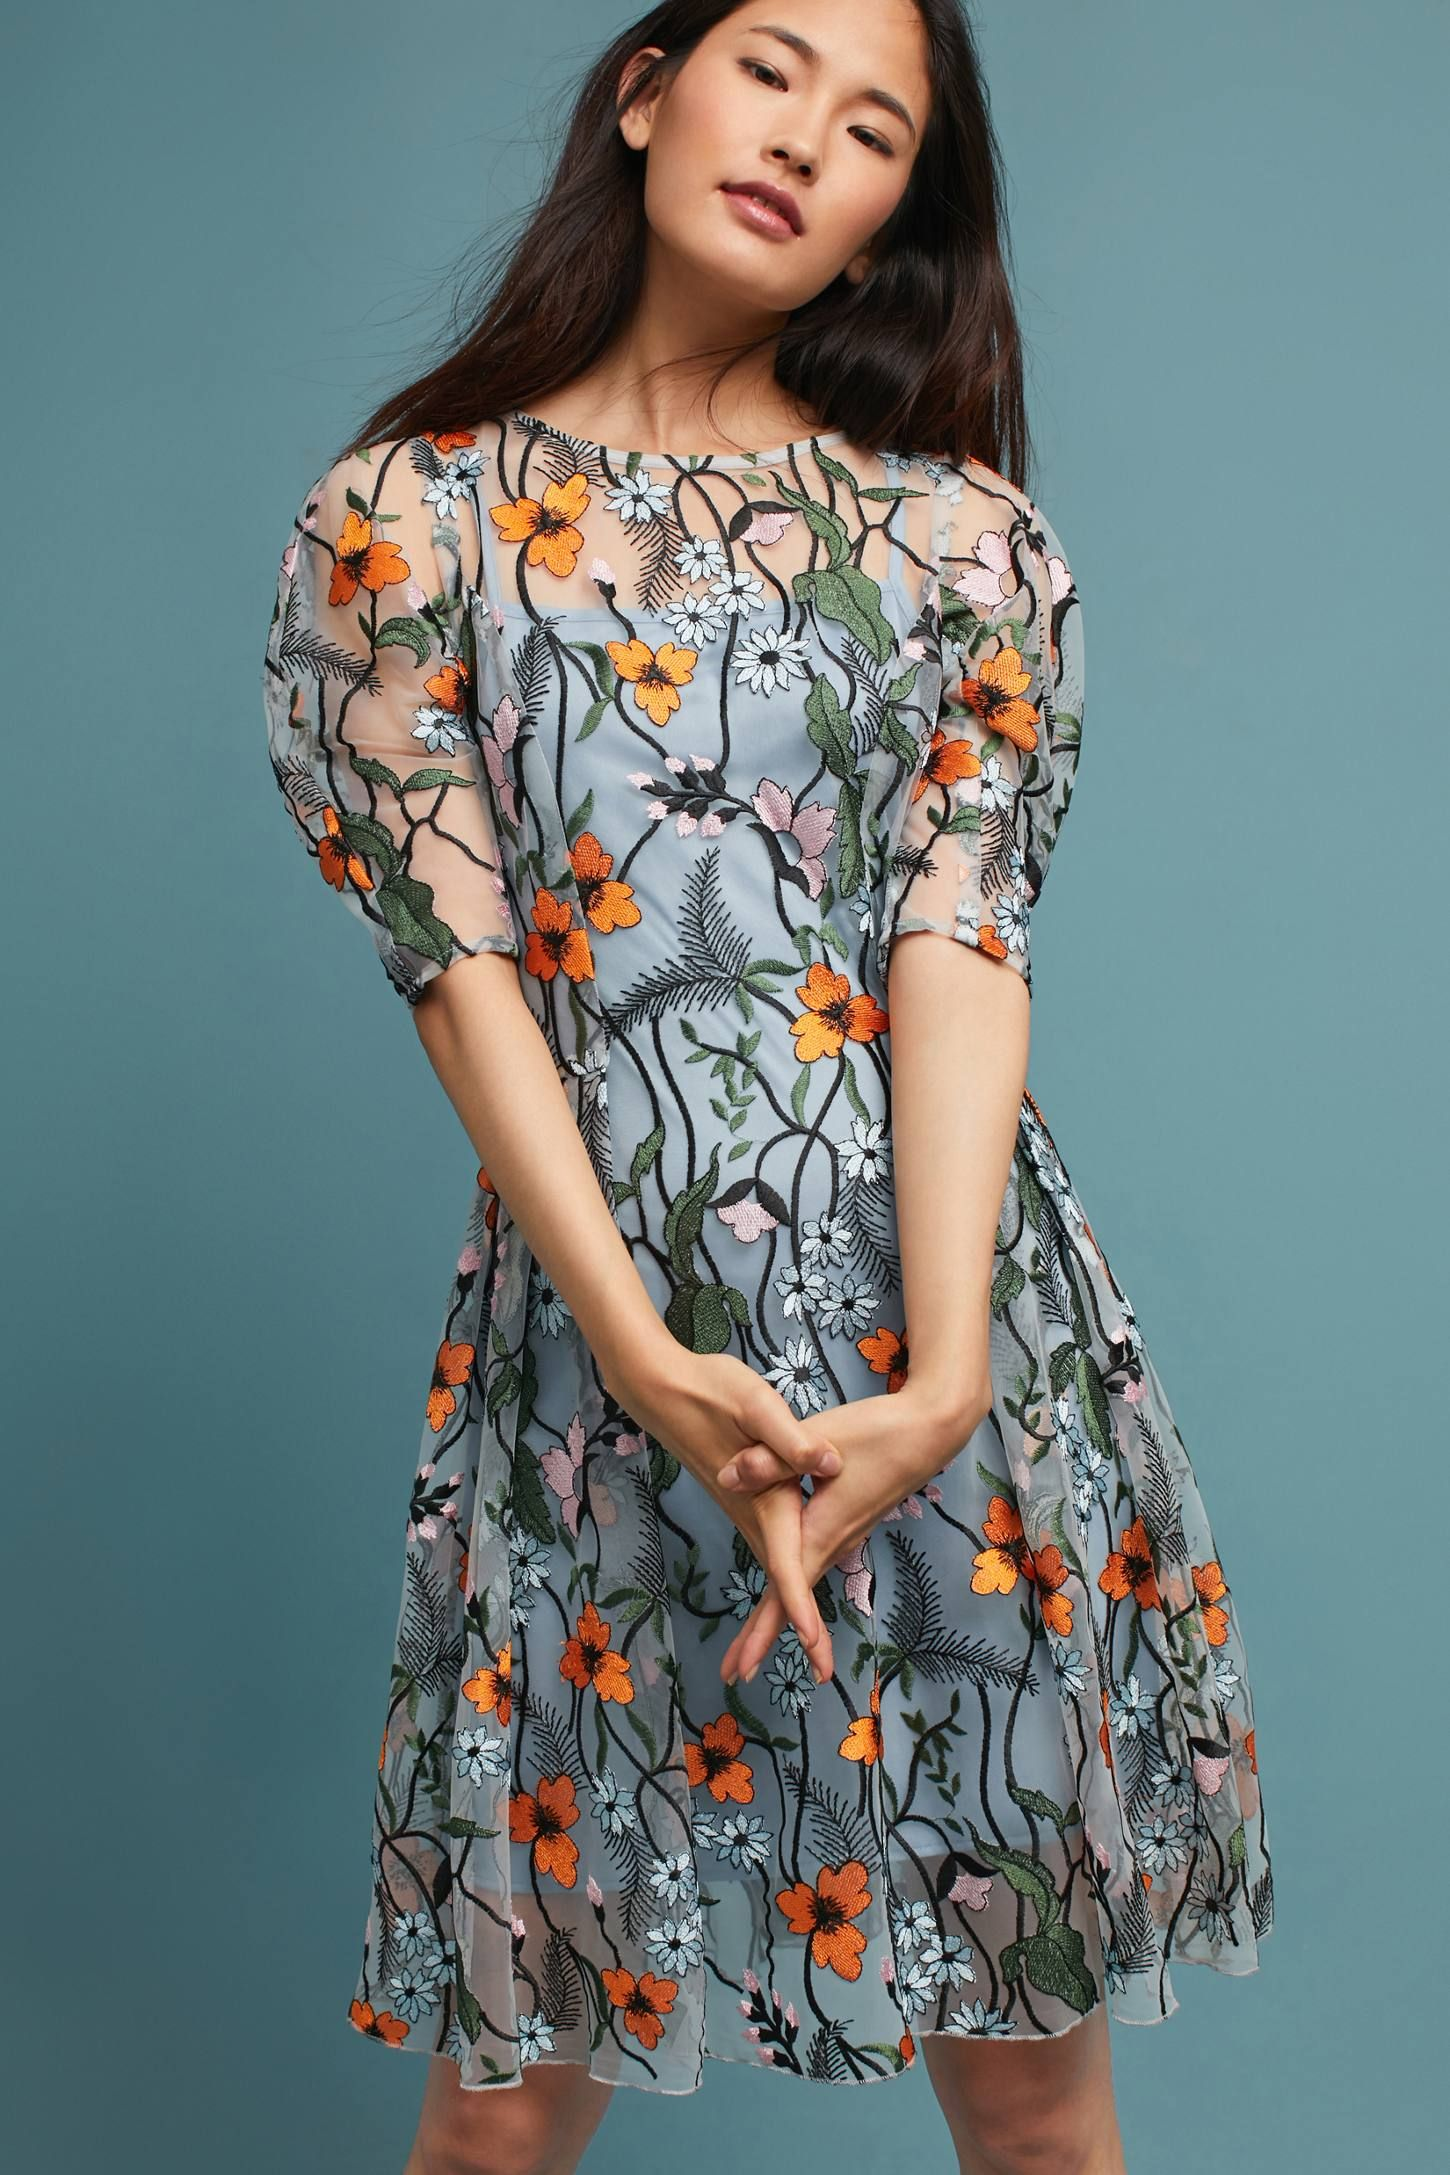 4ef2802adca21 Shop the Aida Embroidered Dress and more Anthropologie at Anthropologie  today. Read customer reviews, discover product details and more.